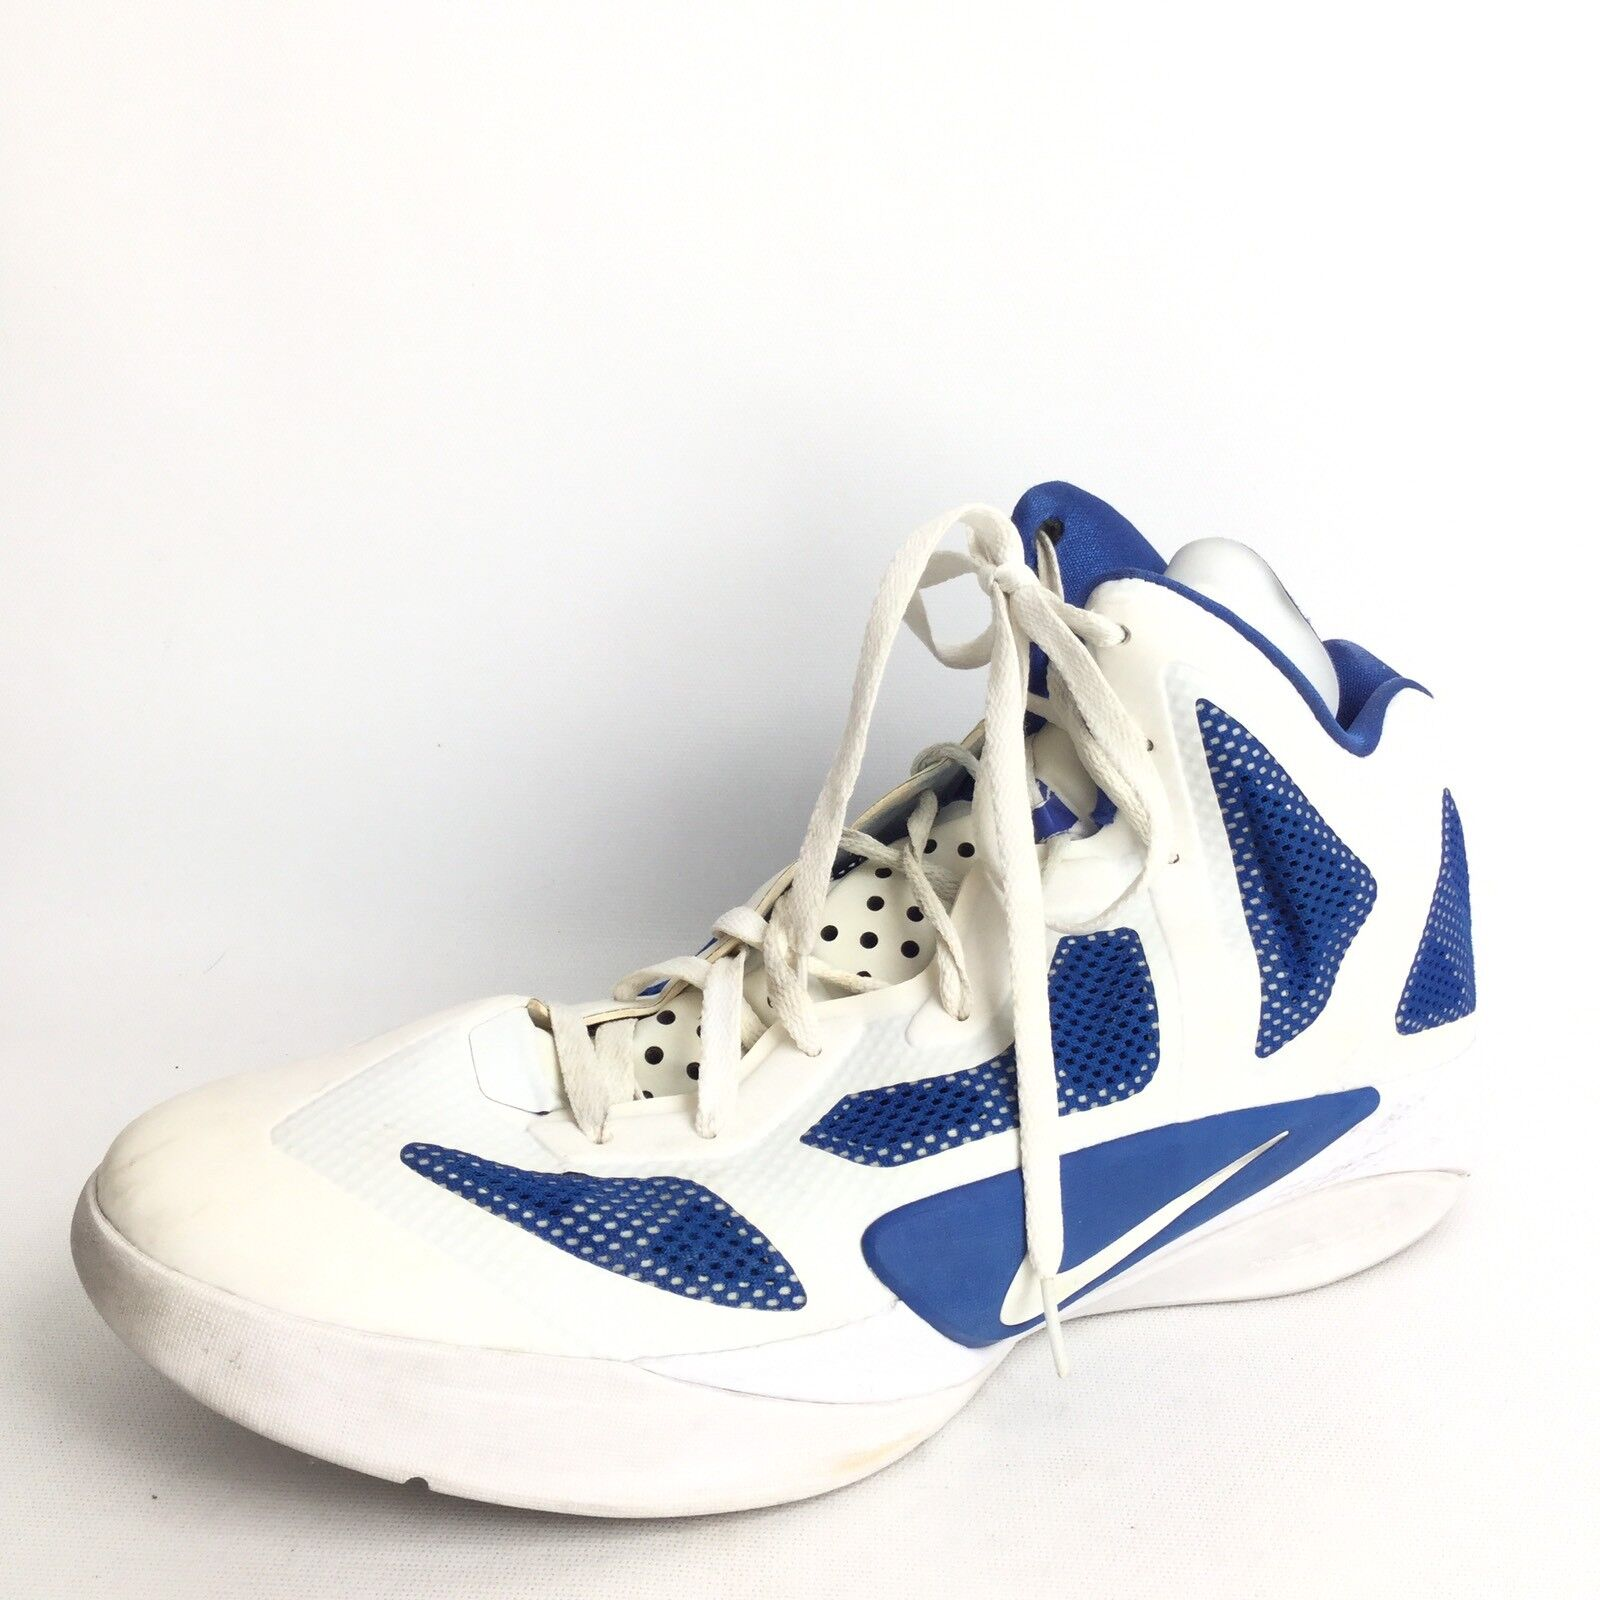 Nike Zoom Hyperfuse Mens Size 15 M White bluee Basketball Sneakers.